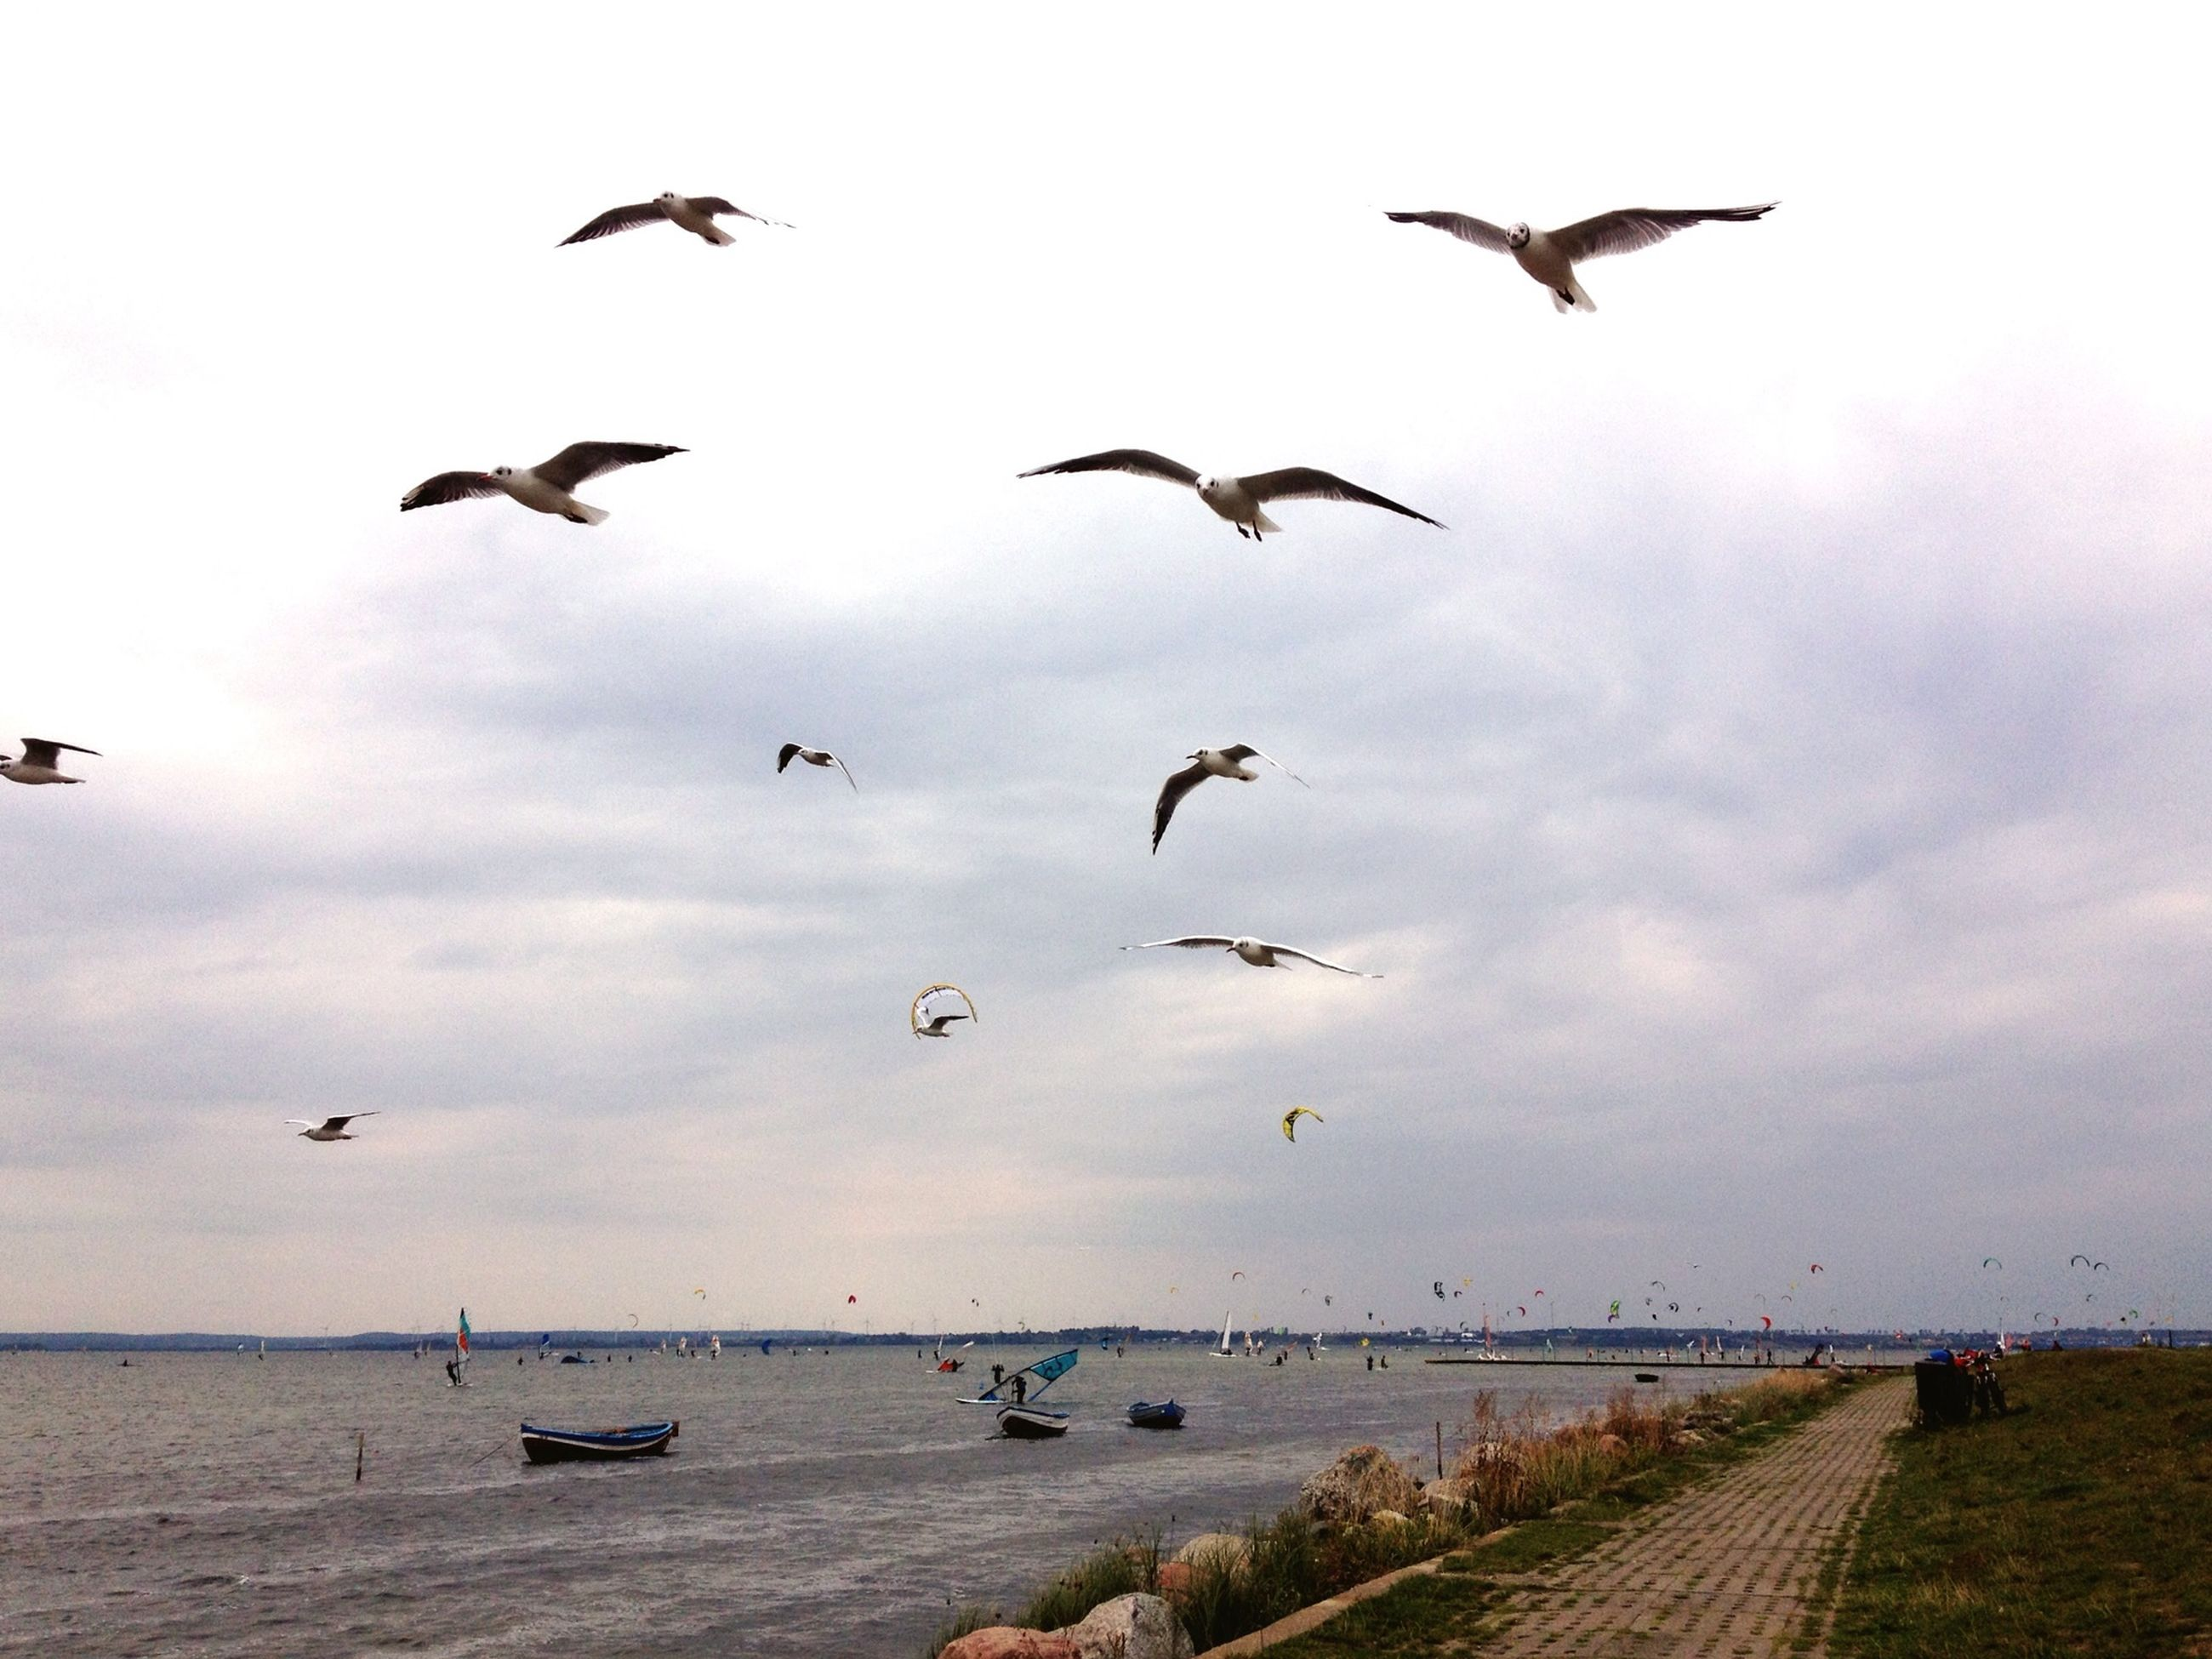 bird, animal themes, animals in the wild, flying, wildlife, sea, seagull, flock of birds, sky, water, horizon over water, beach, cloud - sky, nature, spread wings, medium group of animals, beauty in nature, shore, cloudy